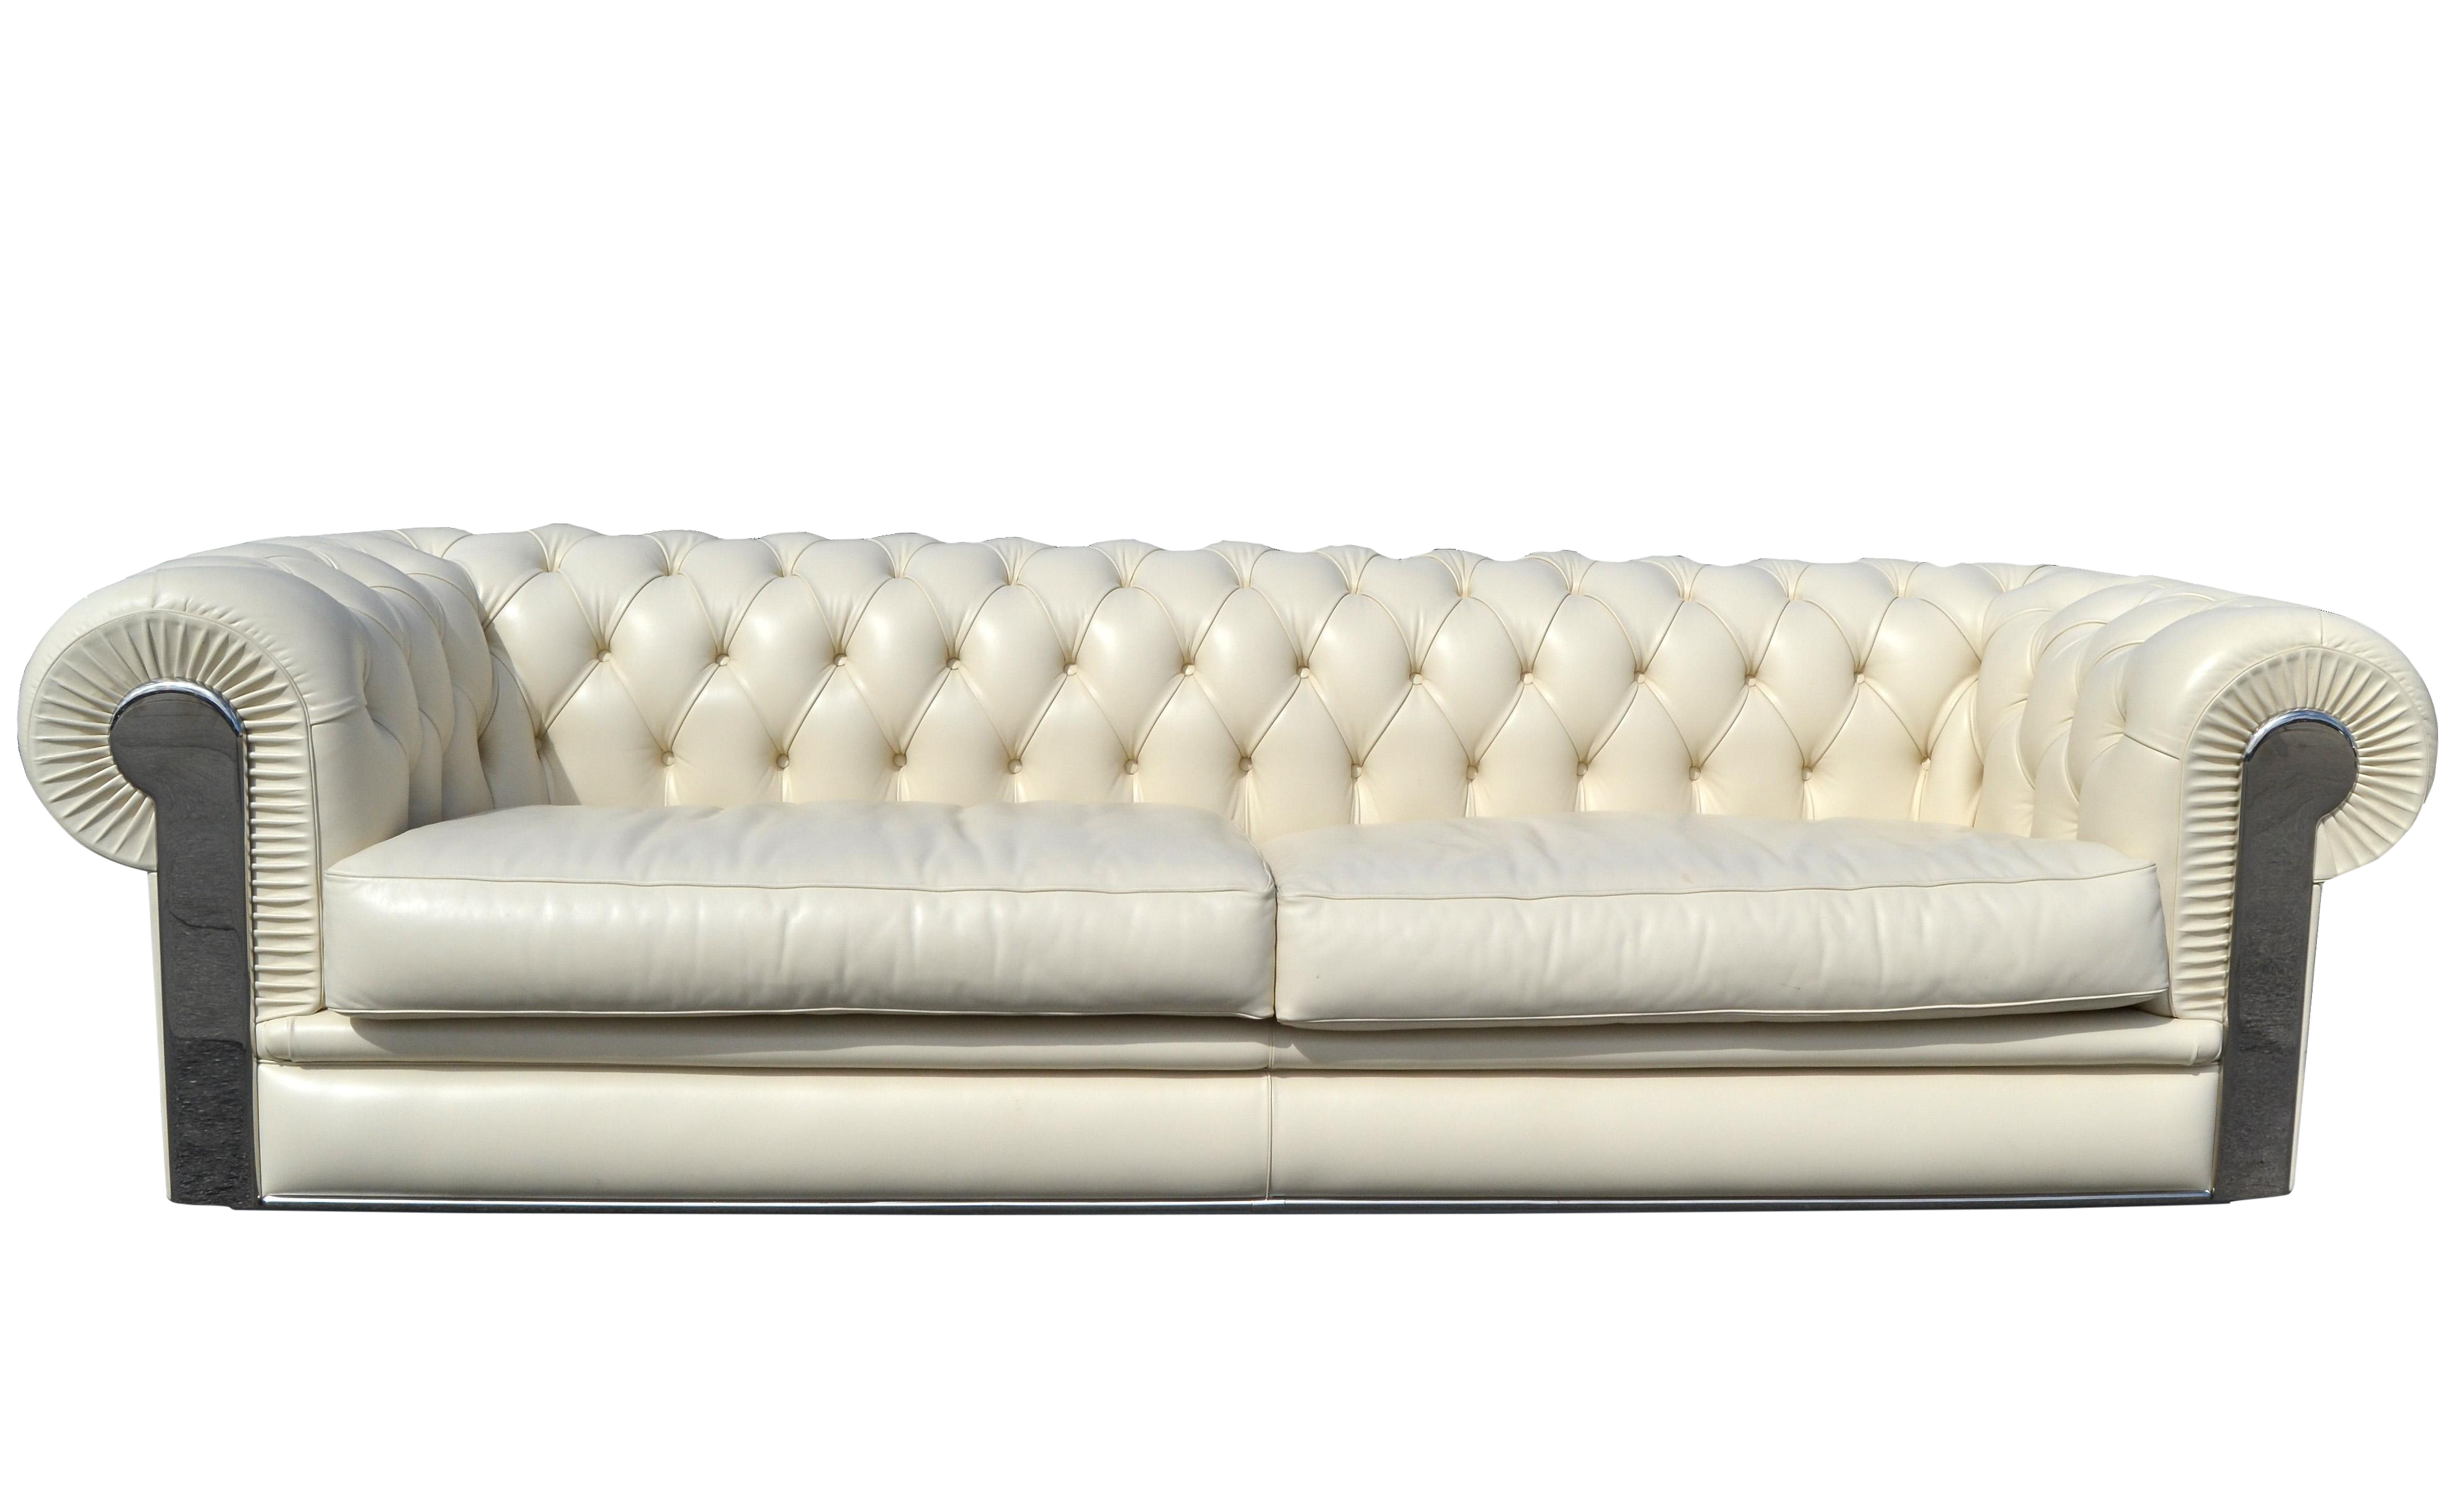 Prime Fendi Casa Albino Tufted Leather Sofa In Chesterfield Style Alphanode Cool Chair Designs And Ideas Alphanodeonline